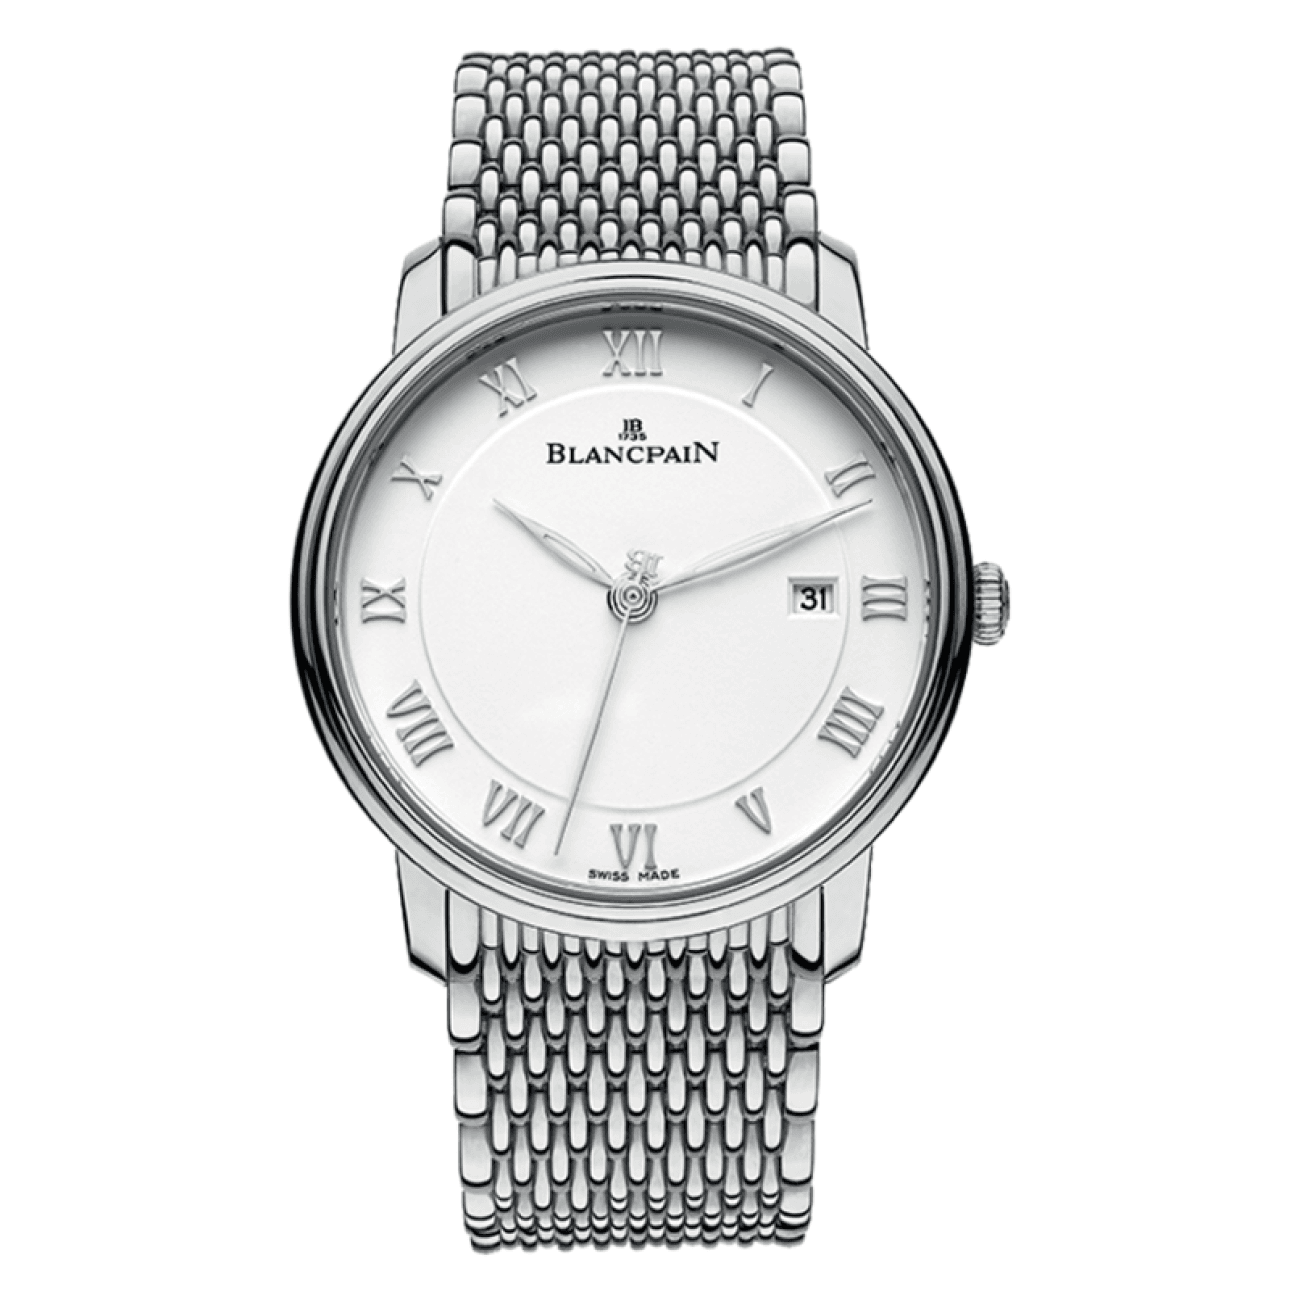 Blancpain Watches - Villeret Ultraplate | Manfredi Jewels